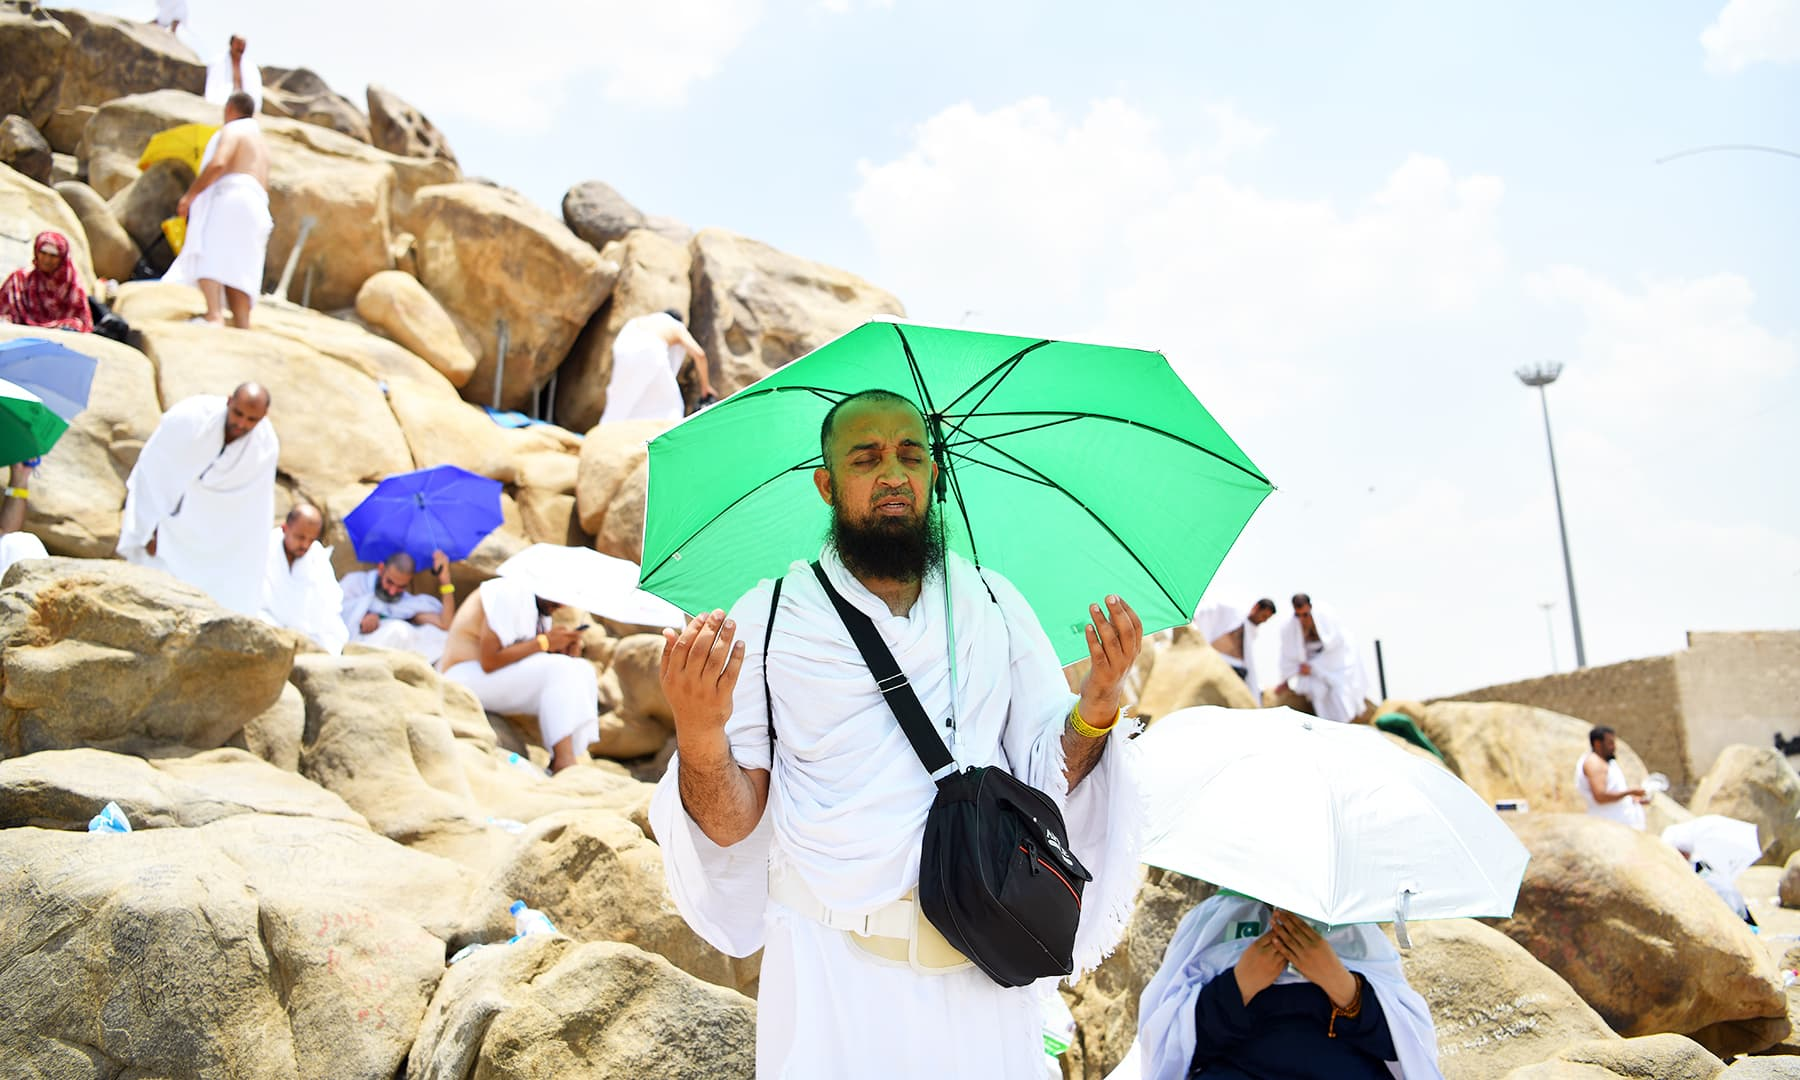 A pilgrim prays on Mount of Mercy in Arafat ahead of the Eidul Azha festival in the holy city of Makkah. — Reuters